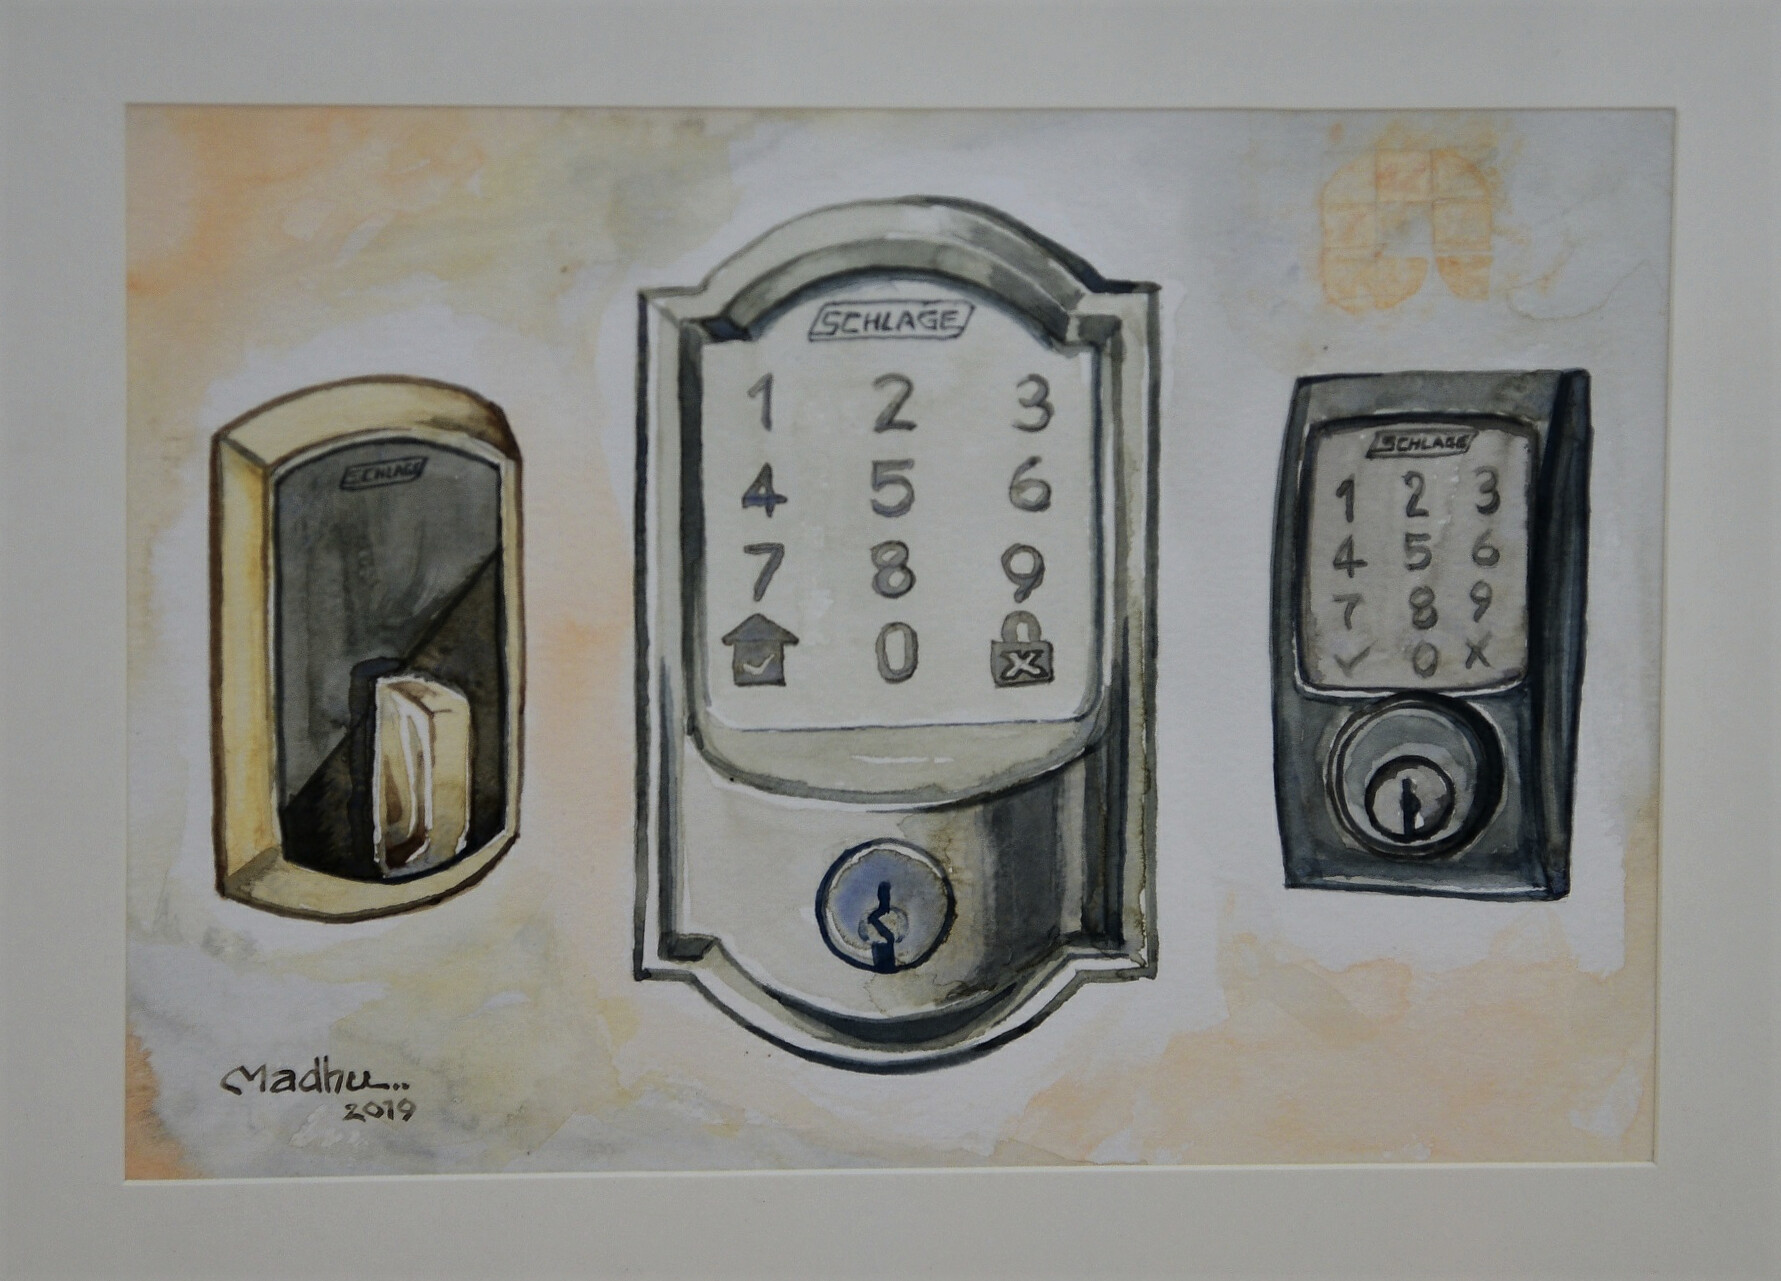 Allegion's eLocks - Water colors on Canson paper